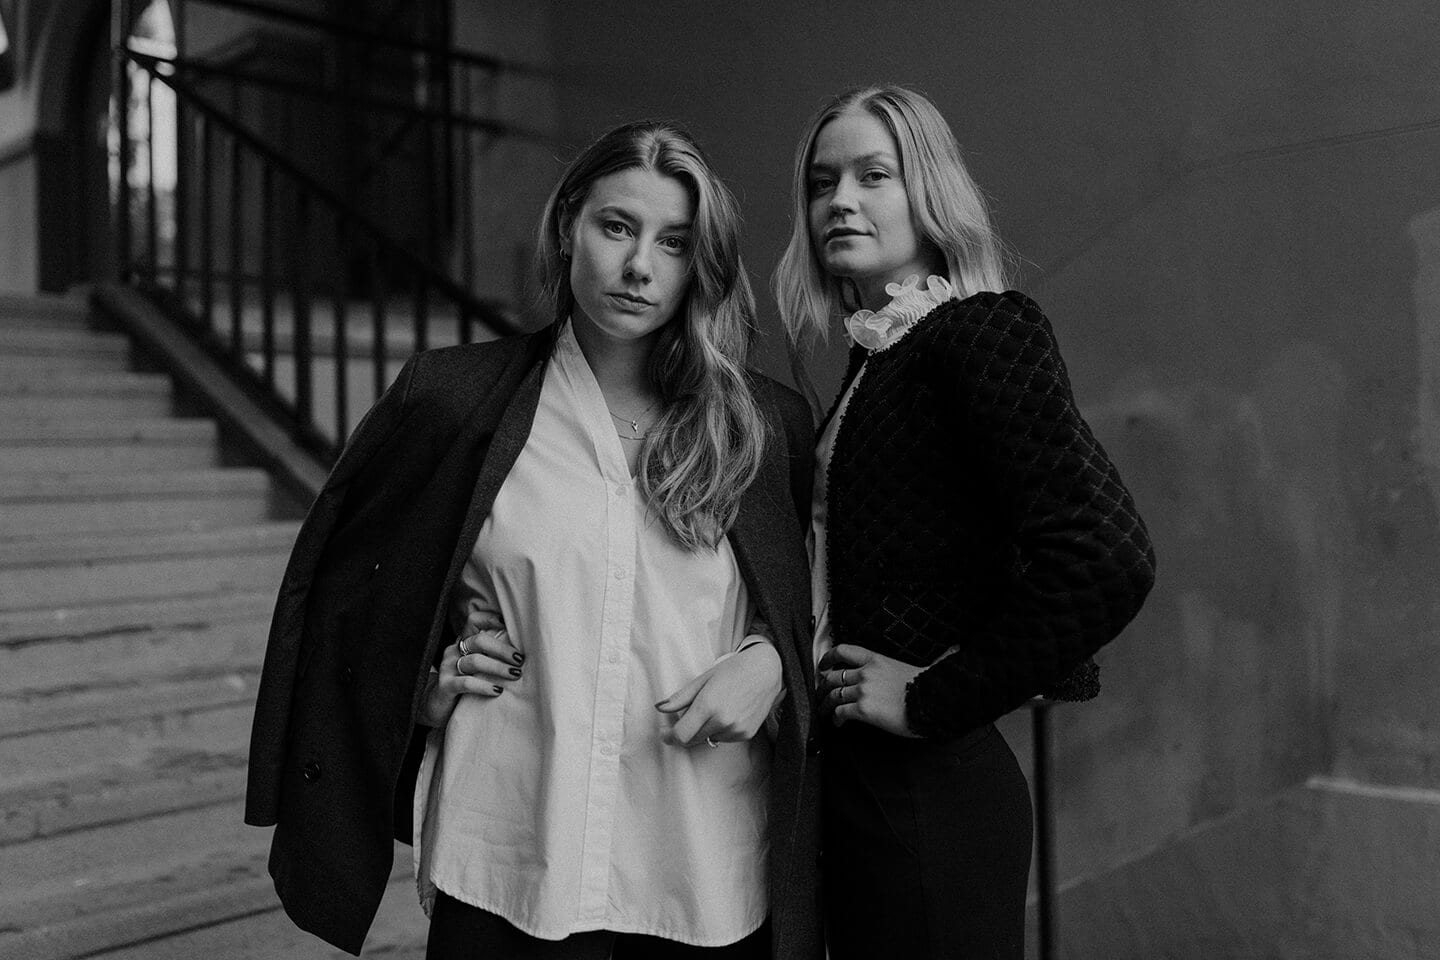 About - Founders of Luie, Amanda Braw and Isabelle Åström